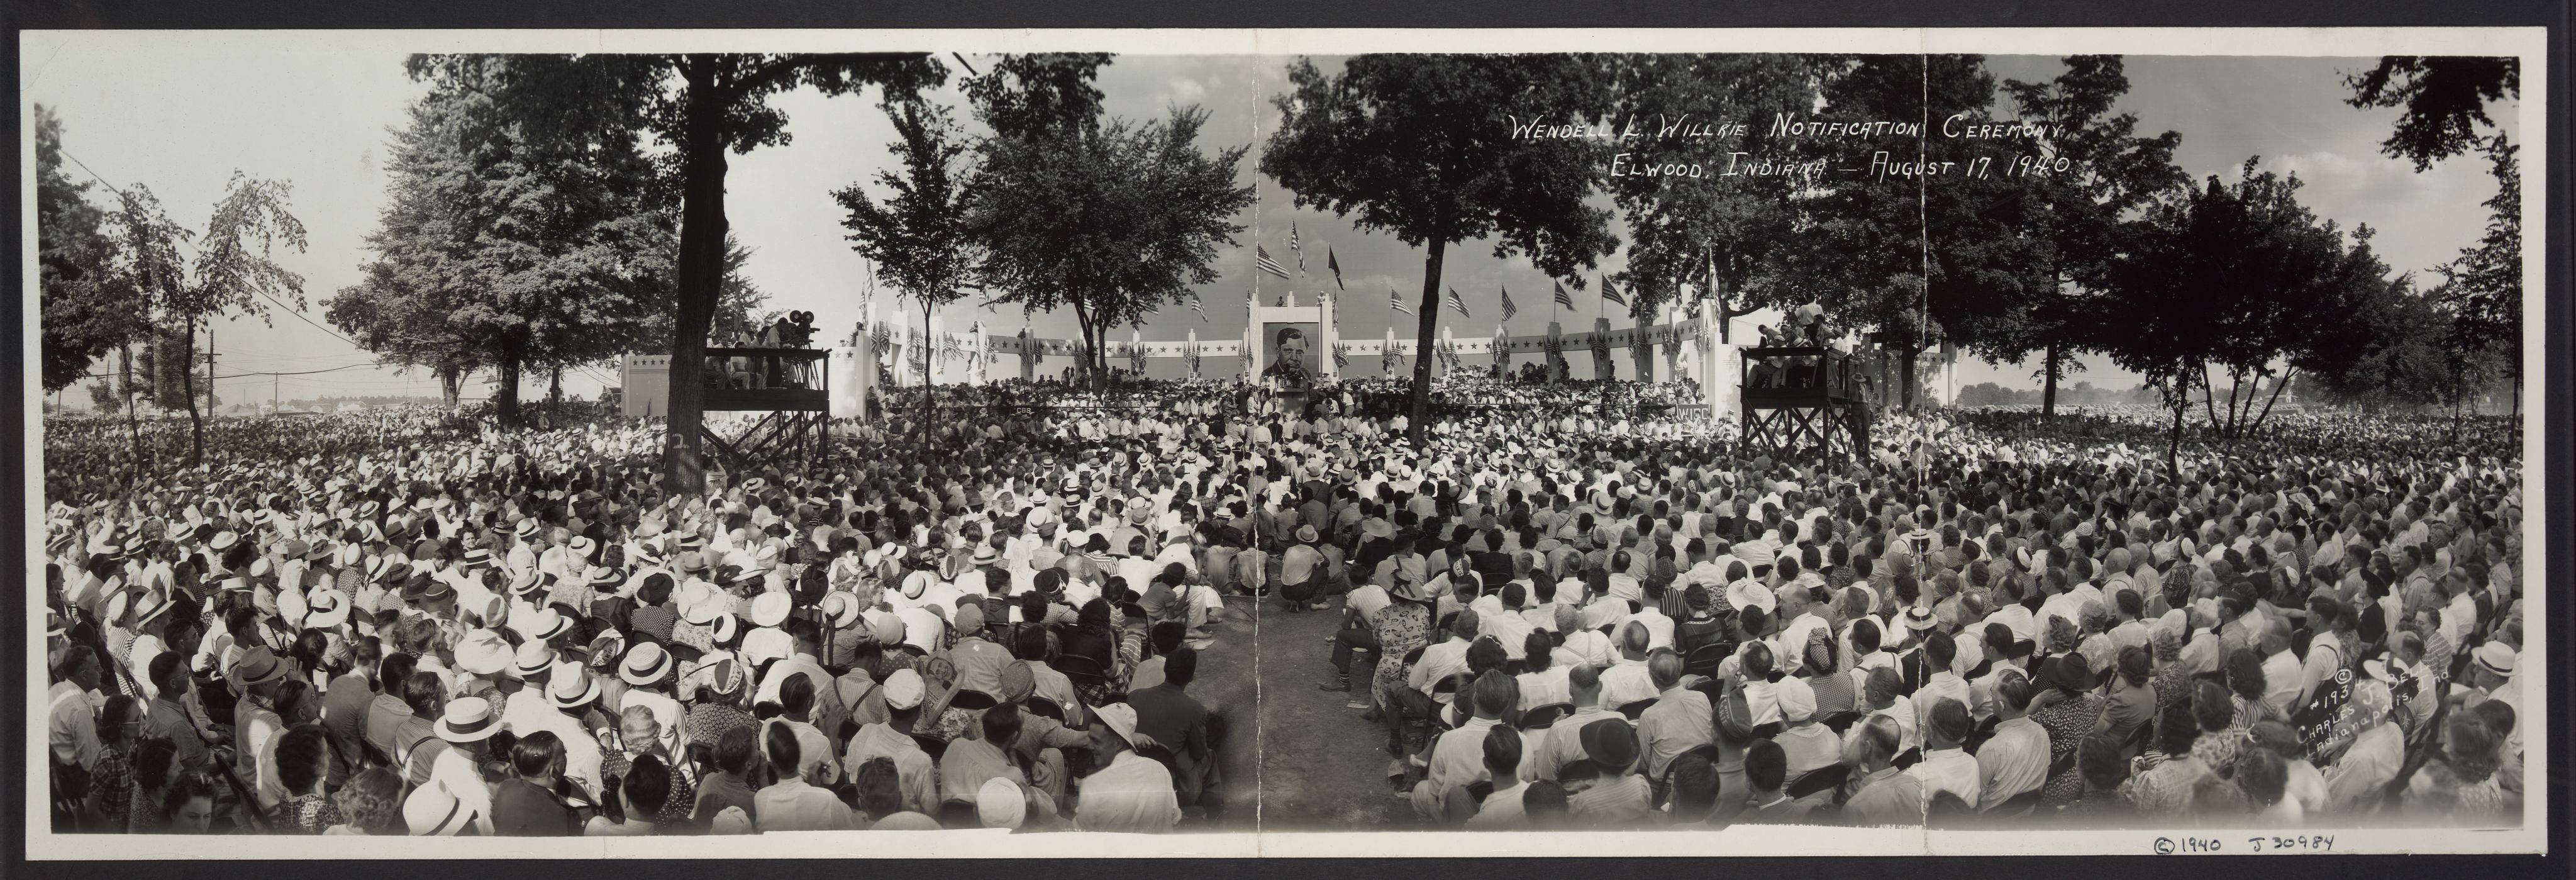 The official notification ceremony of the Republican presidential nomination for Wendell Willkie, Elwood, Indiana, August 17, 1940. Image courtesy of the Library of Congress.